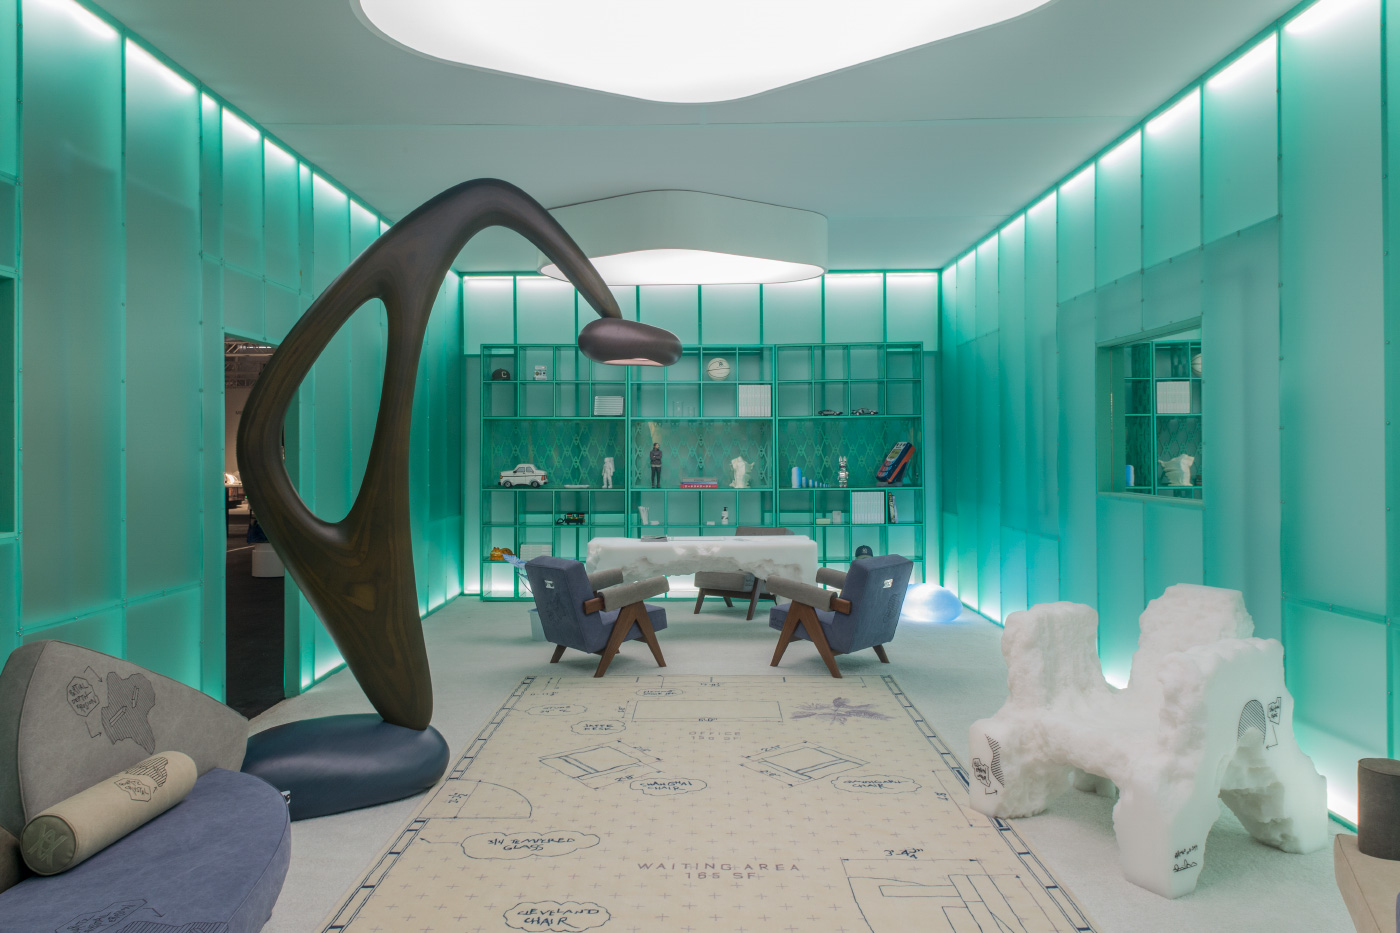 Interior of a green pavilion with glowing walls full of collectible design objects